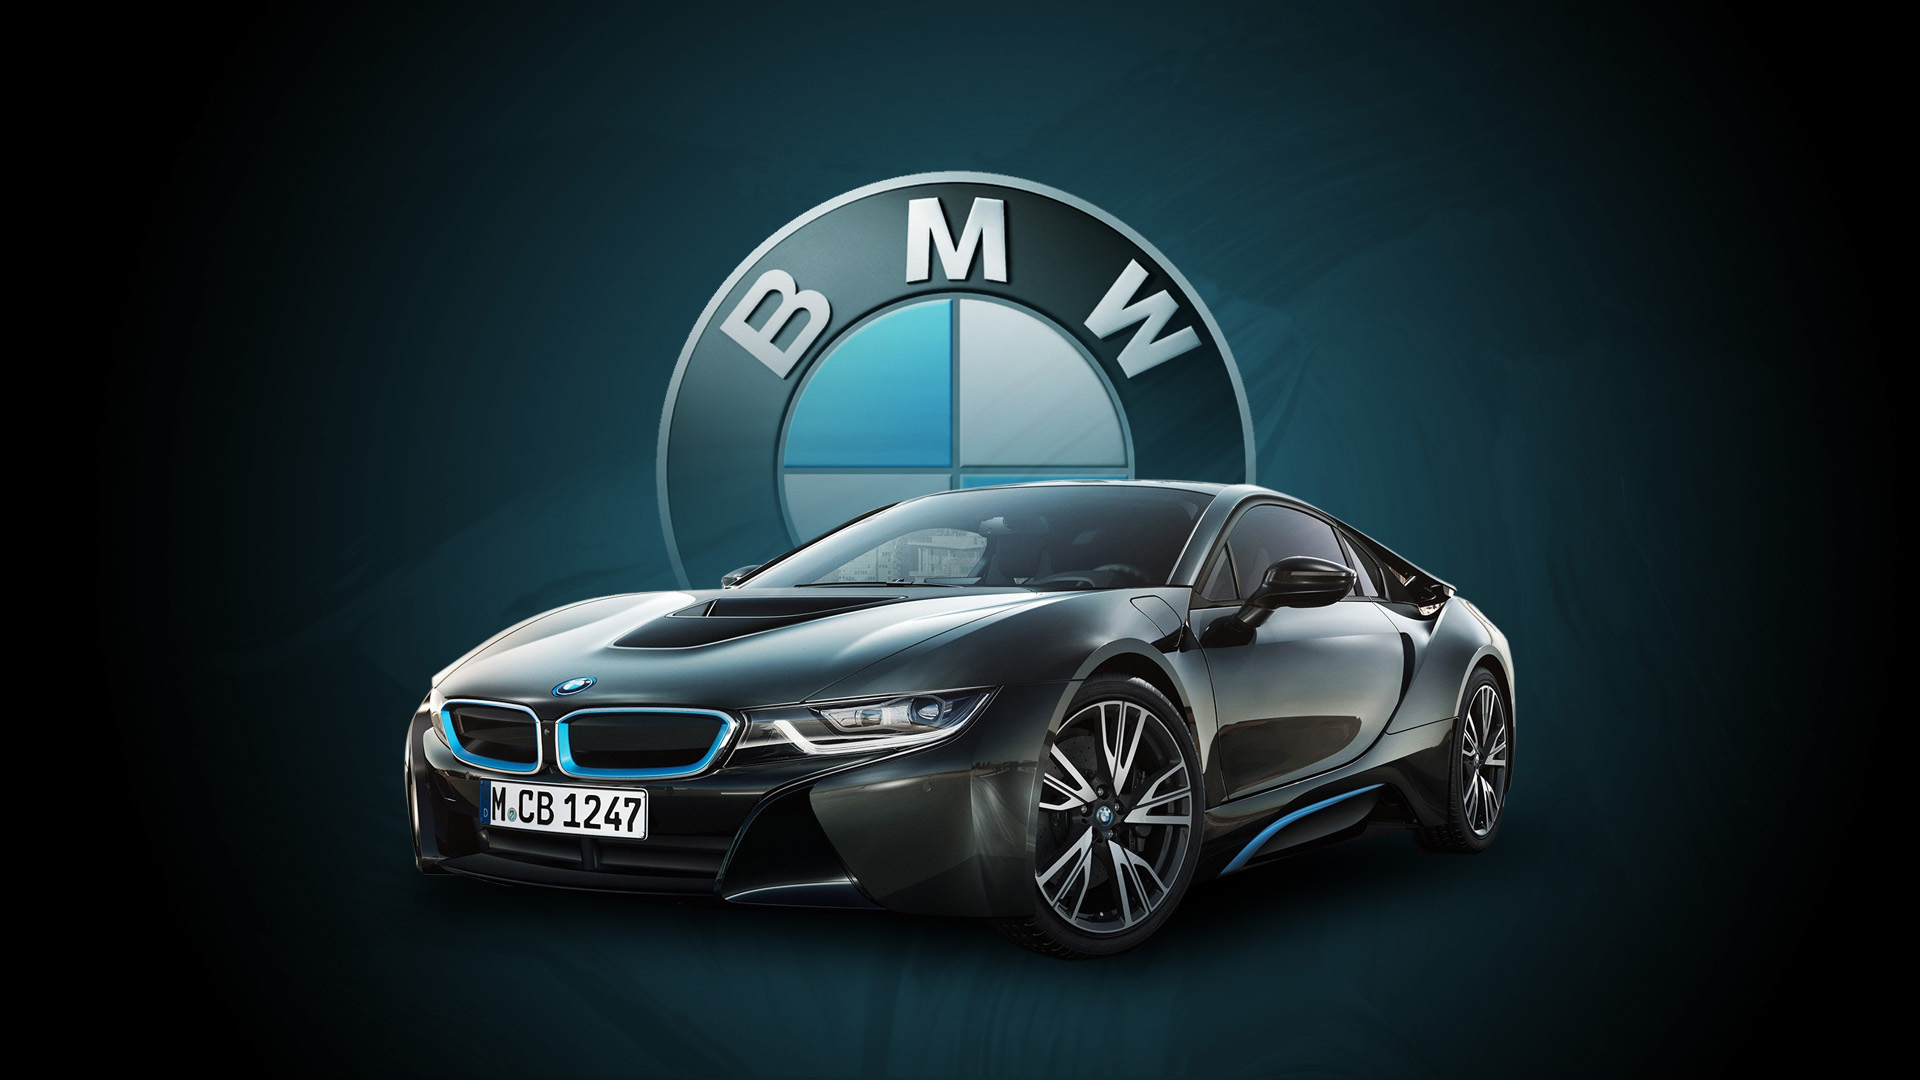 Awesome Bmw M Modified Free Hd Wallpapers Car Wallpaper 1920x1080